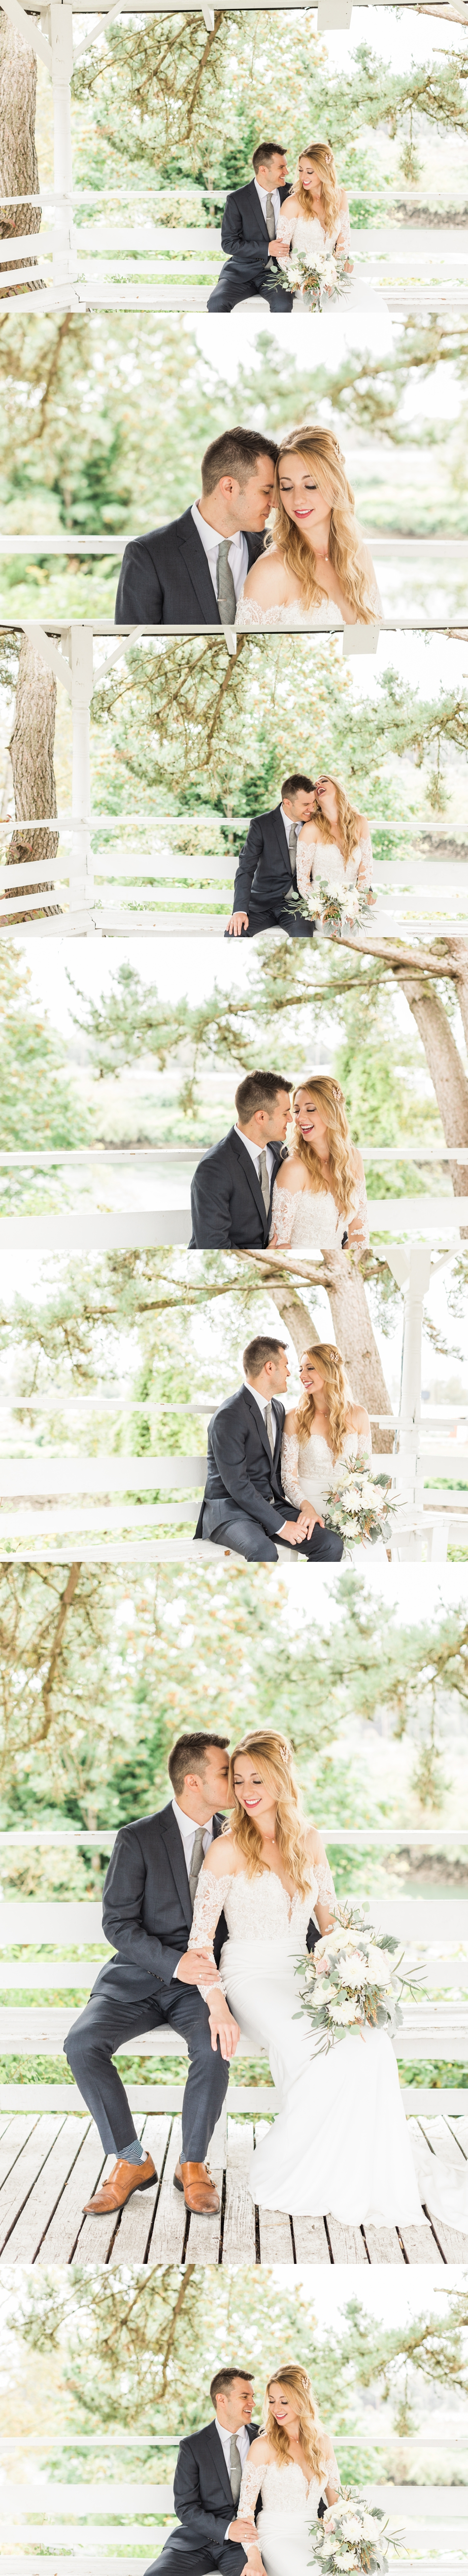 Photos of an intimate moment between bride and groom at an intimate wedding at Belle Chapel in Snohomish, a wedding venue near Seattle. | Joanna Monger Photography | Snohomish & Seattle Photographer